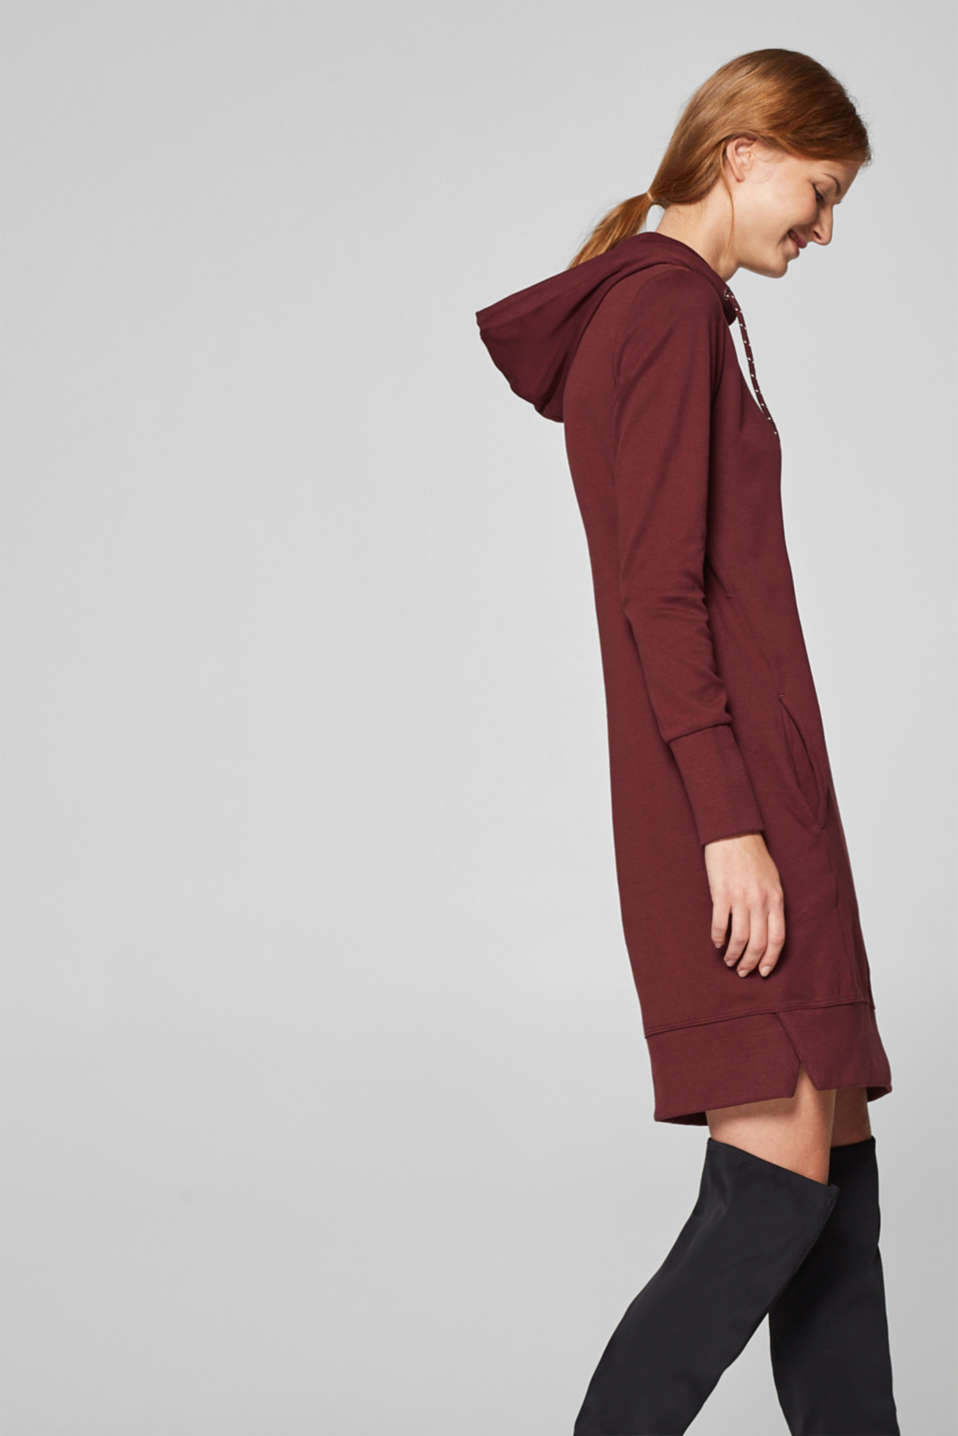 edc - Hoodie dress in 100% cotton